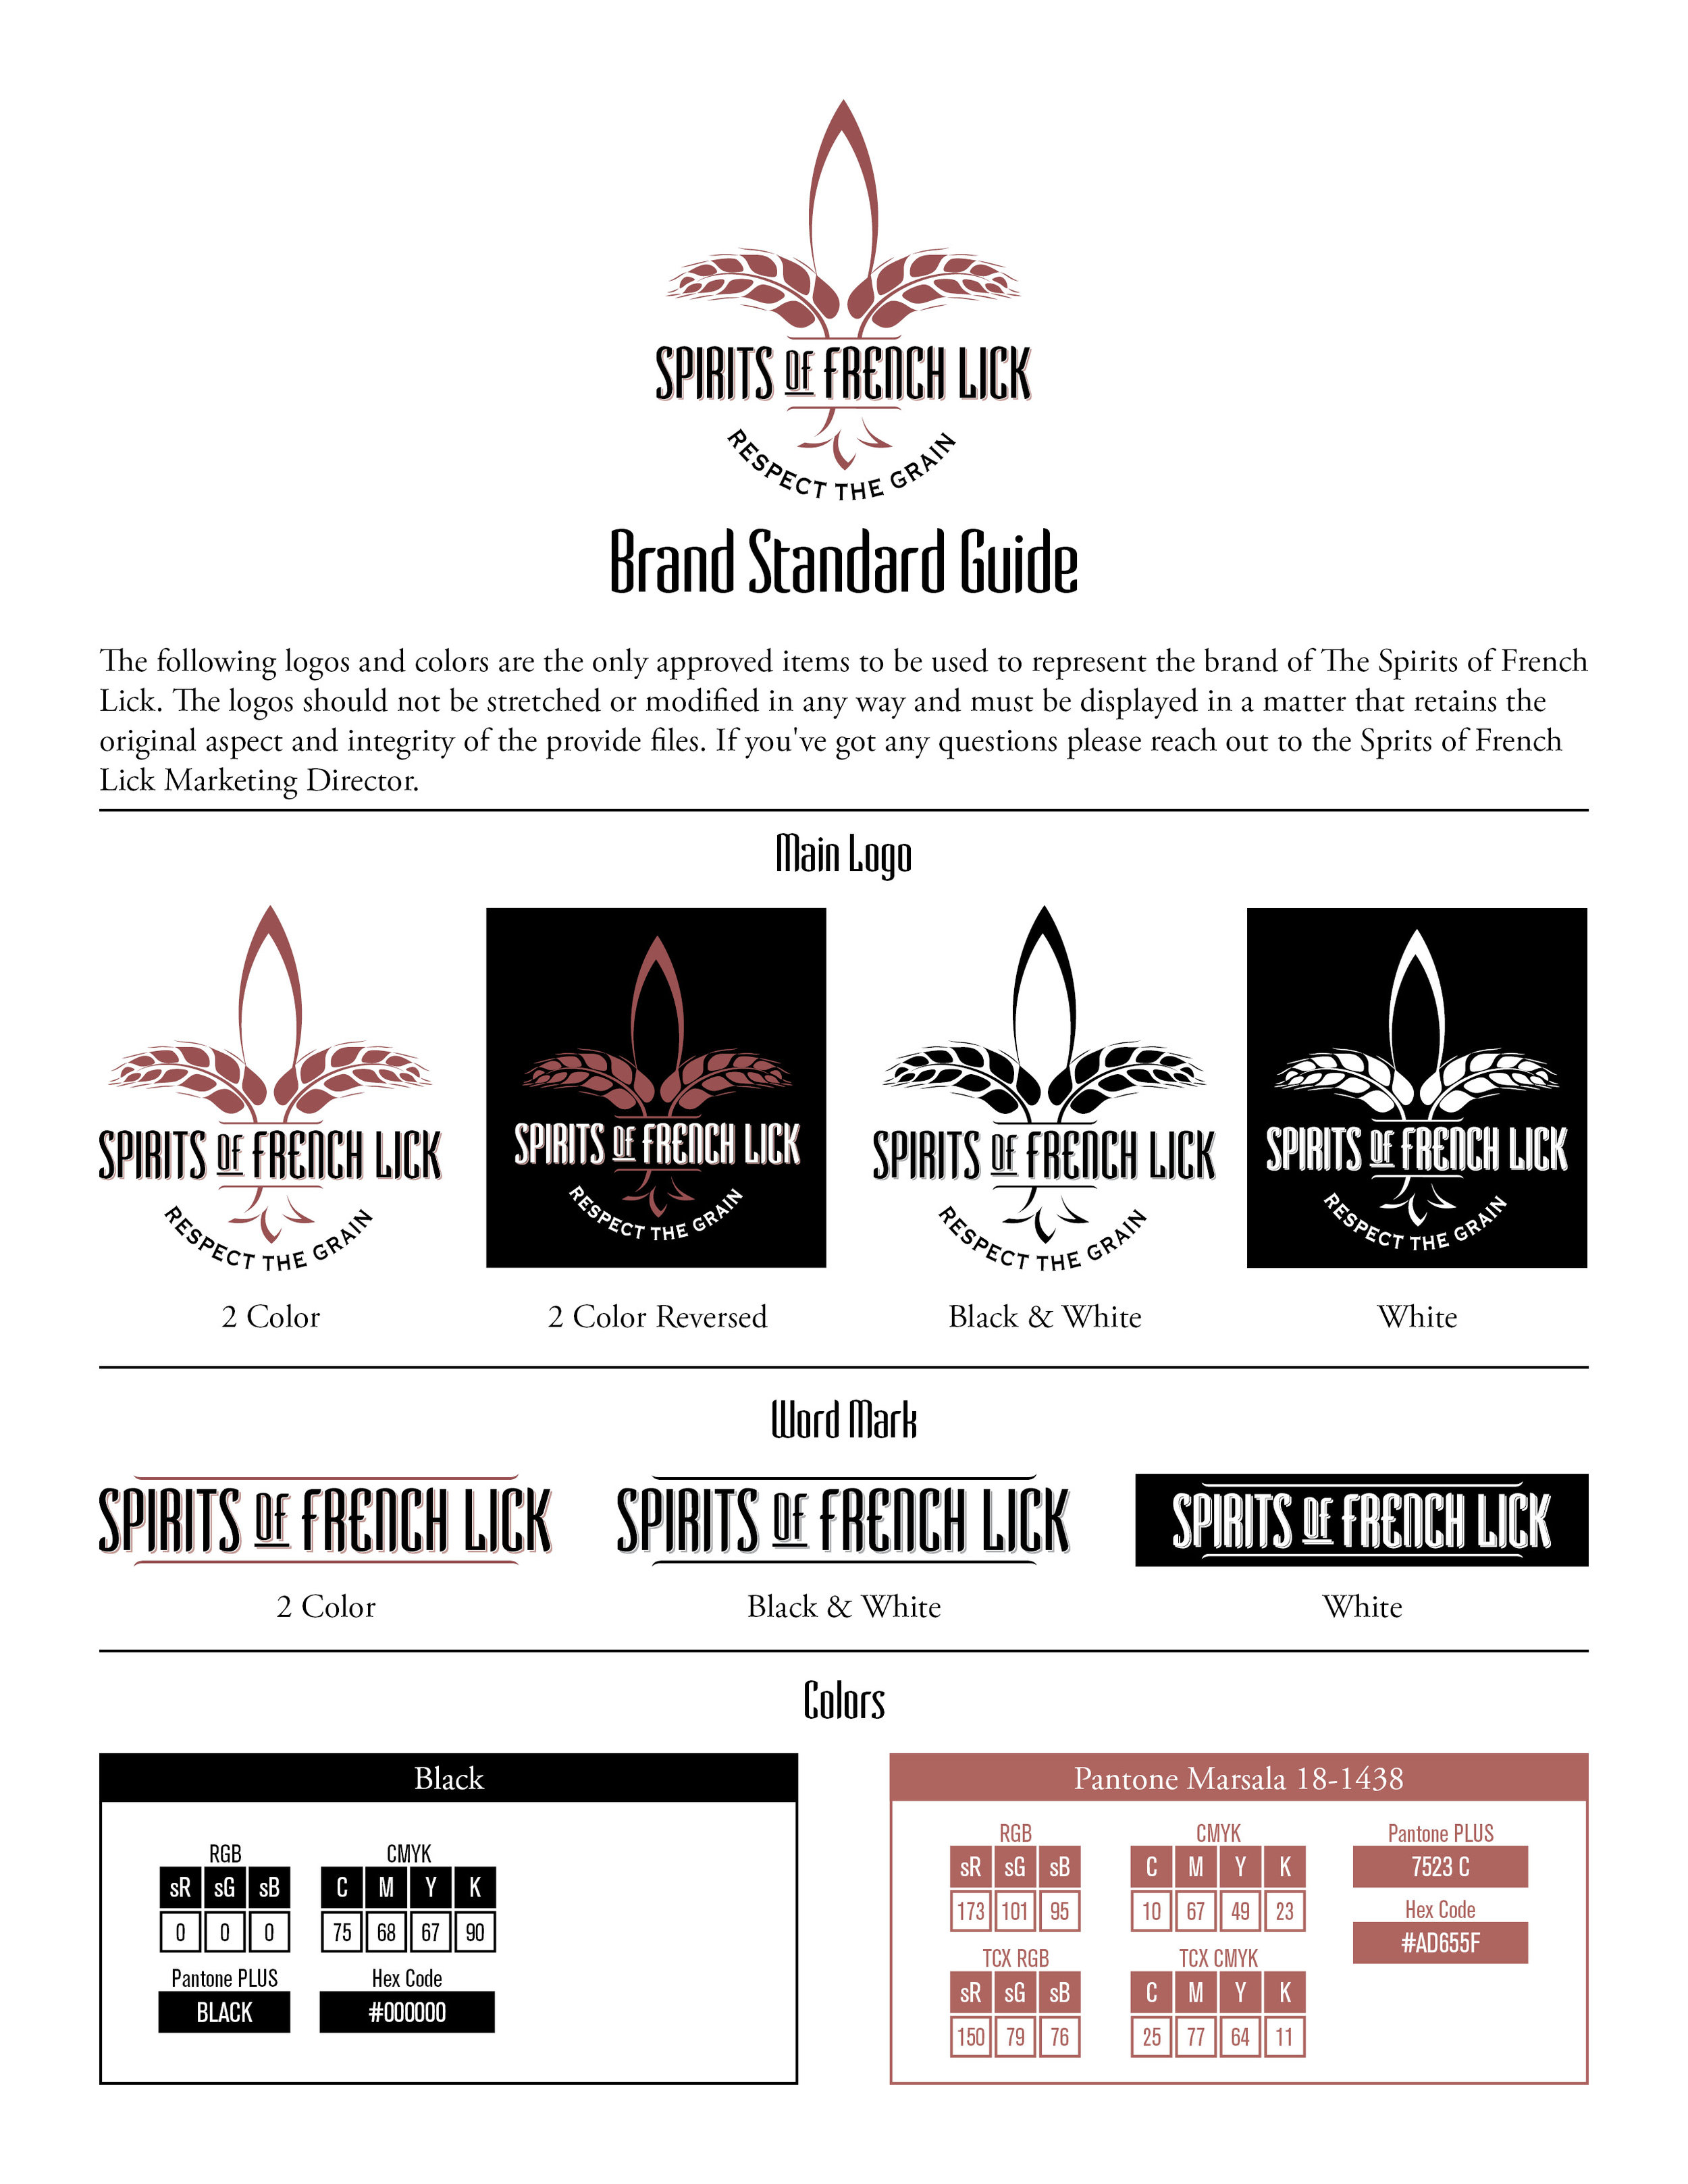 BRAND GUIDE - bEFORE USING THE LOGOS AVAILABLE TO DOWNLOAD PLEASE REVIEW THIS BRAND STANDARD GUIDE